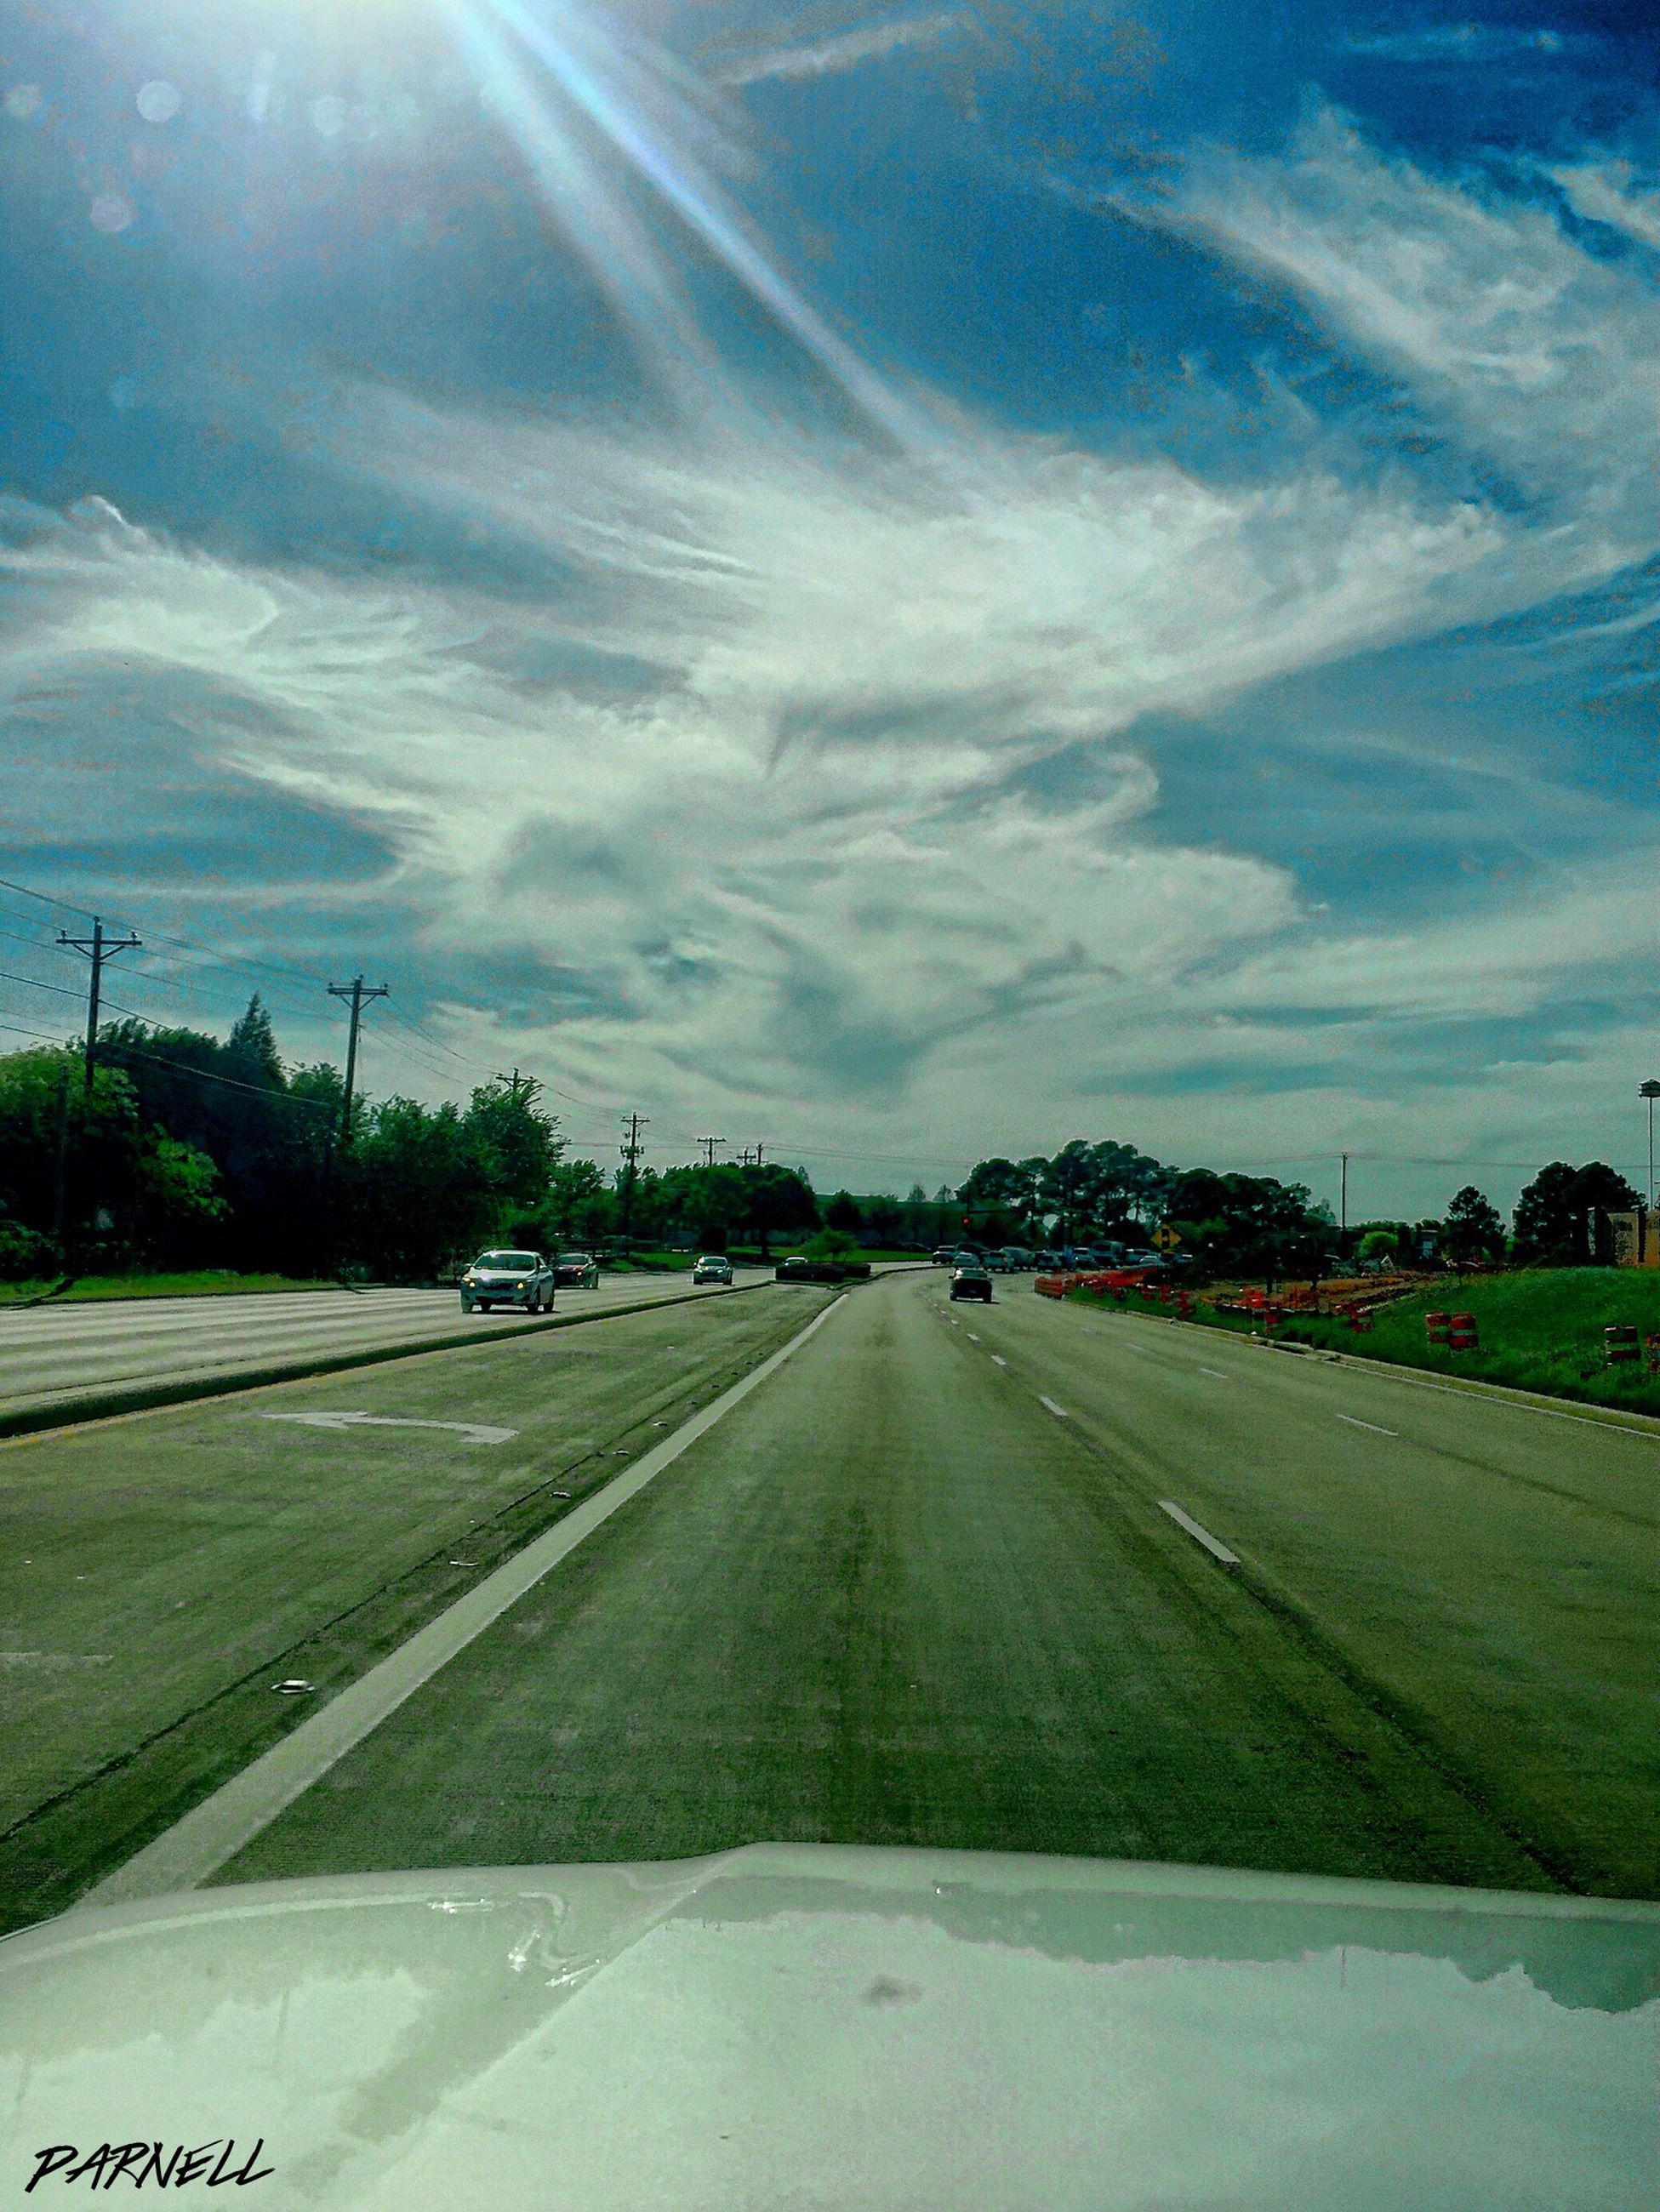 transportation, road, sky, the way forward, road marking, cloud - sky, car, diminishing perspective, vanishing point, mode of transport, windshield, land vehicle, country road, cloud, street, landscape, vehicle interior, nature, field, day